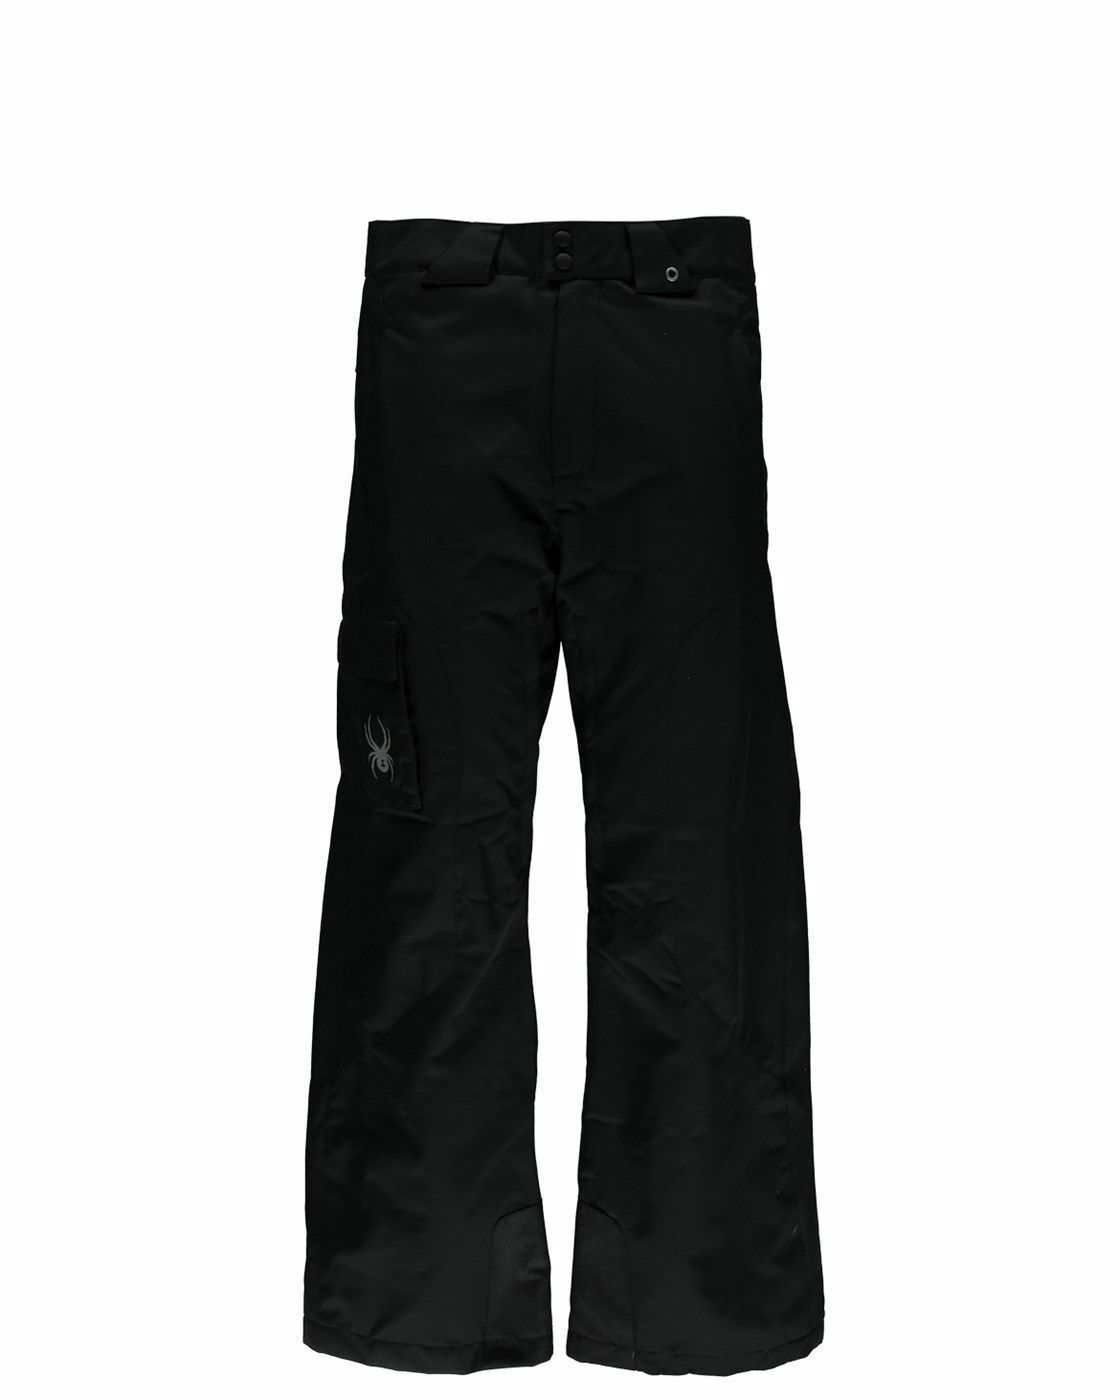 Spyder Ace Ski  Pants NWT - XL - R  - New  fast delivery and free shipping on all orders